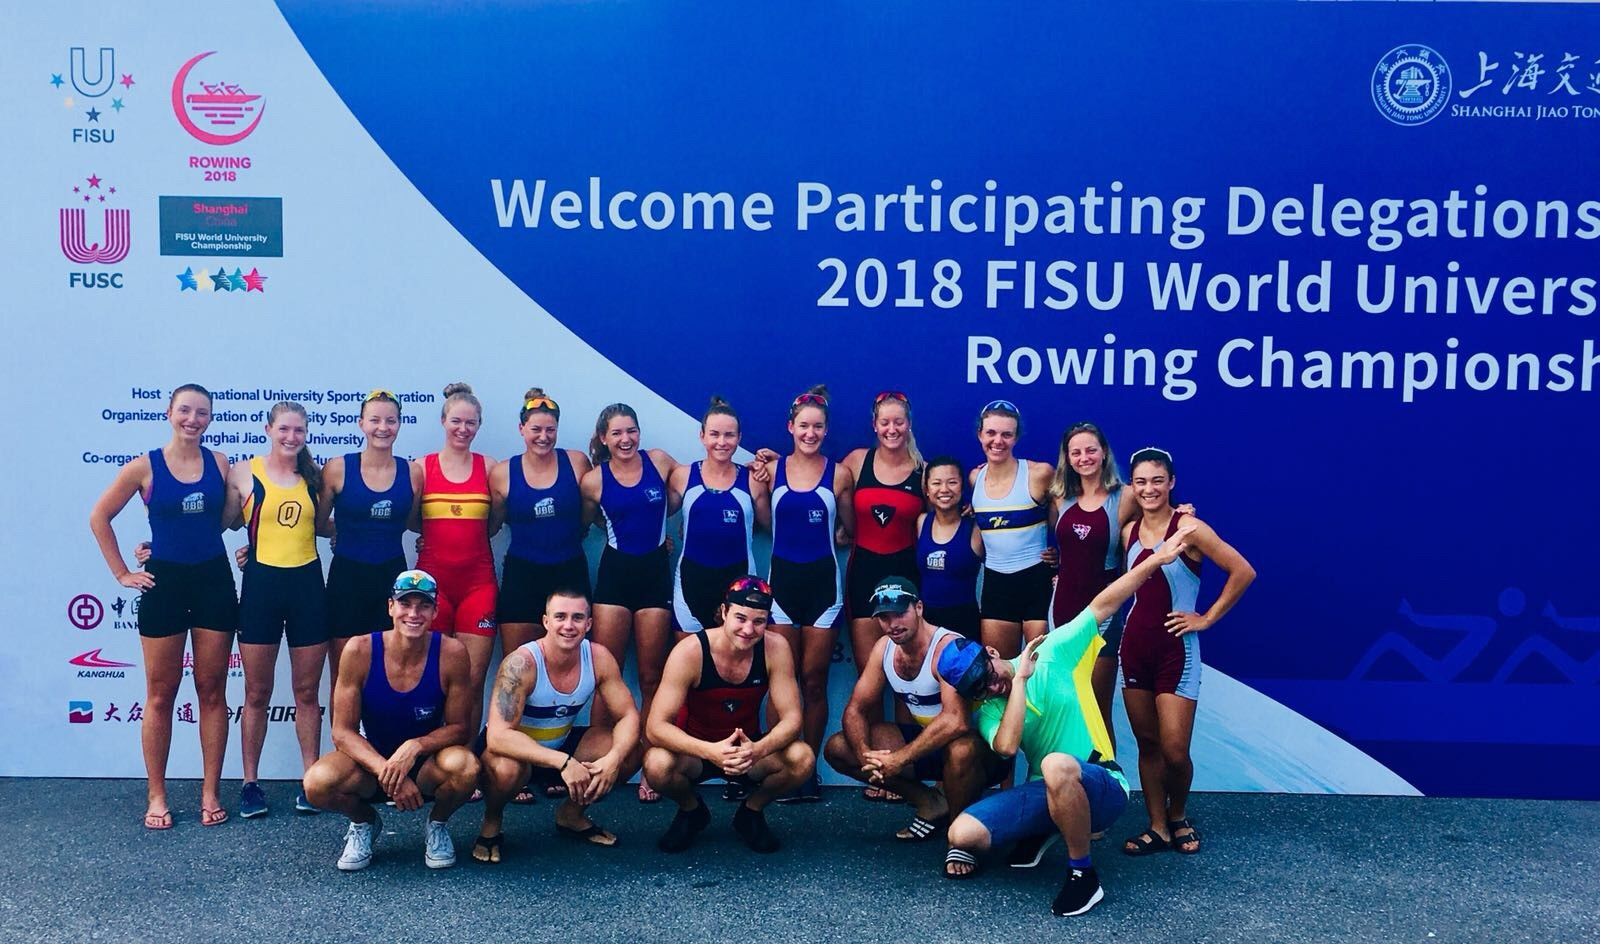 2018_Rowing_WUC_-_Team_photo.jpg (319 KB)